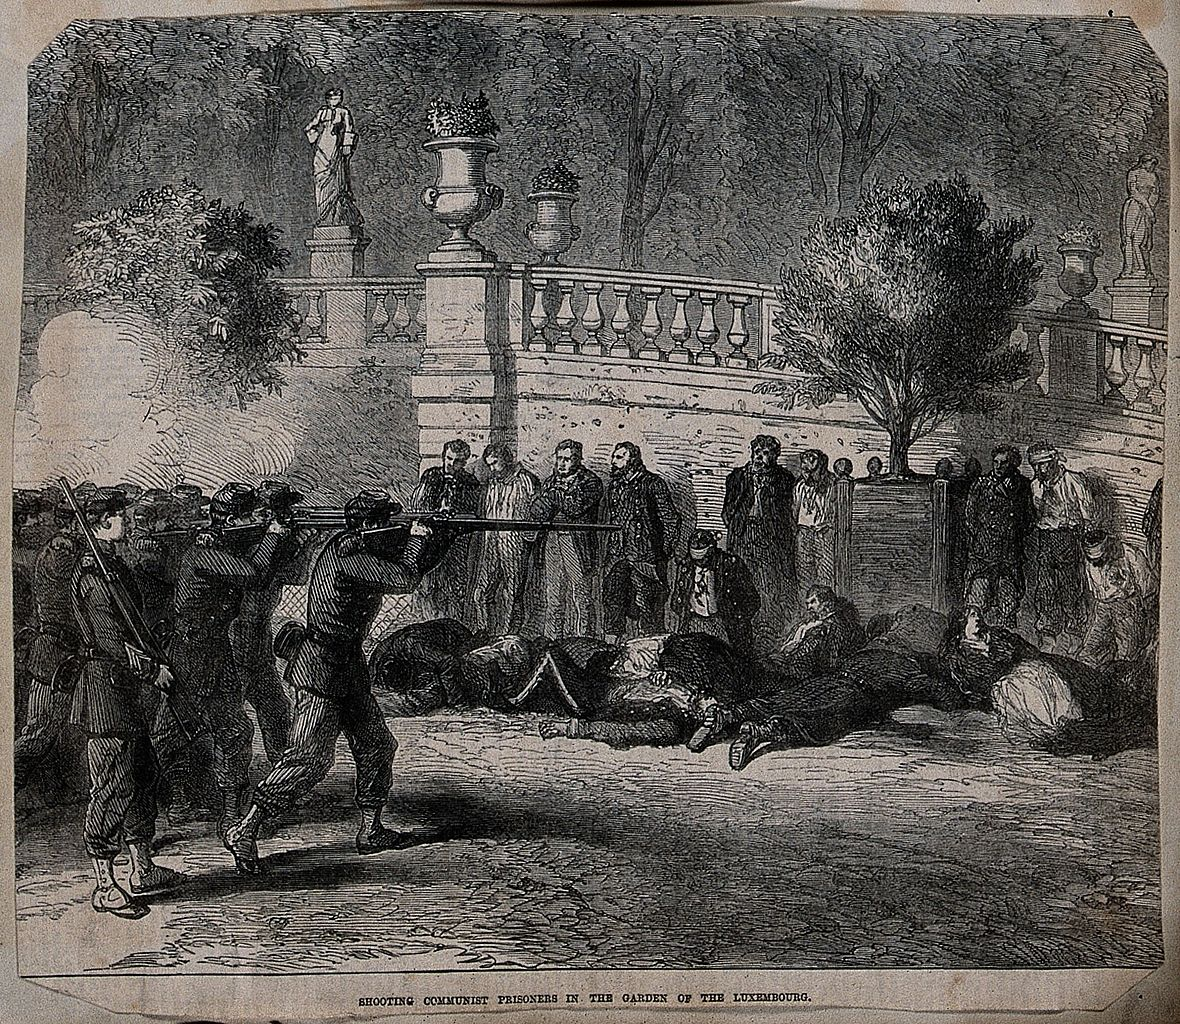 aa1 Execution of Communist prisoners in the garden of the Wellcome photo wellcomeimages.org